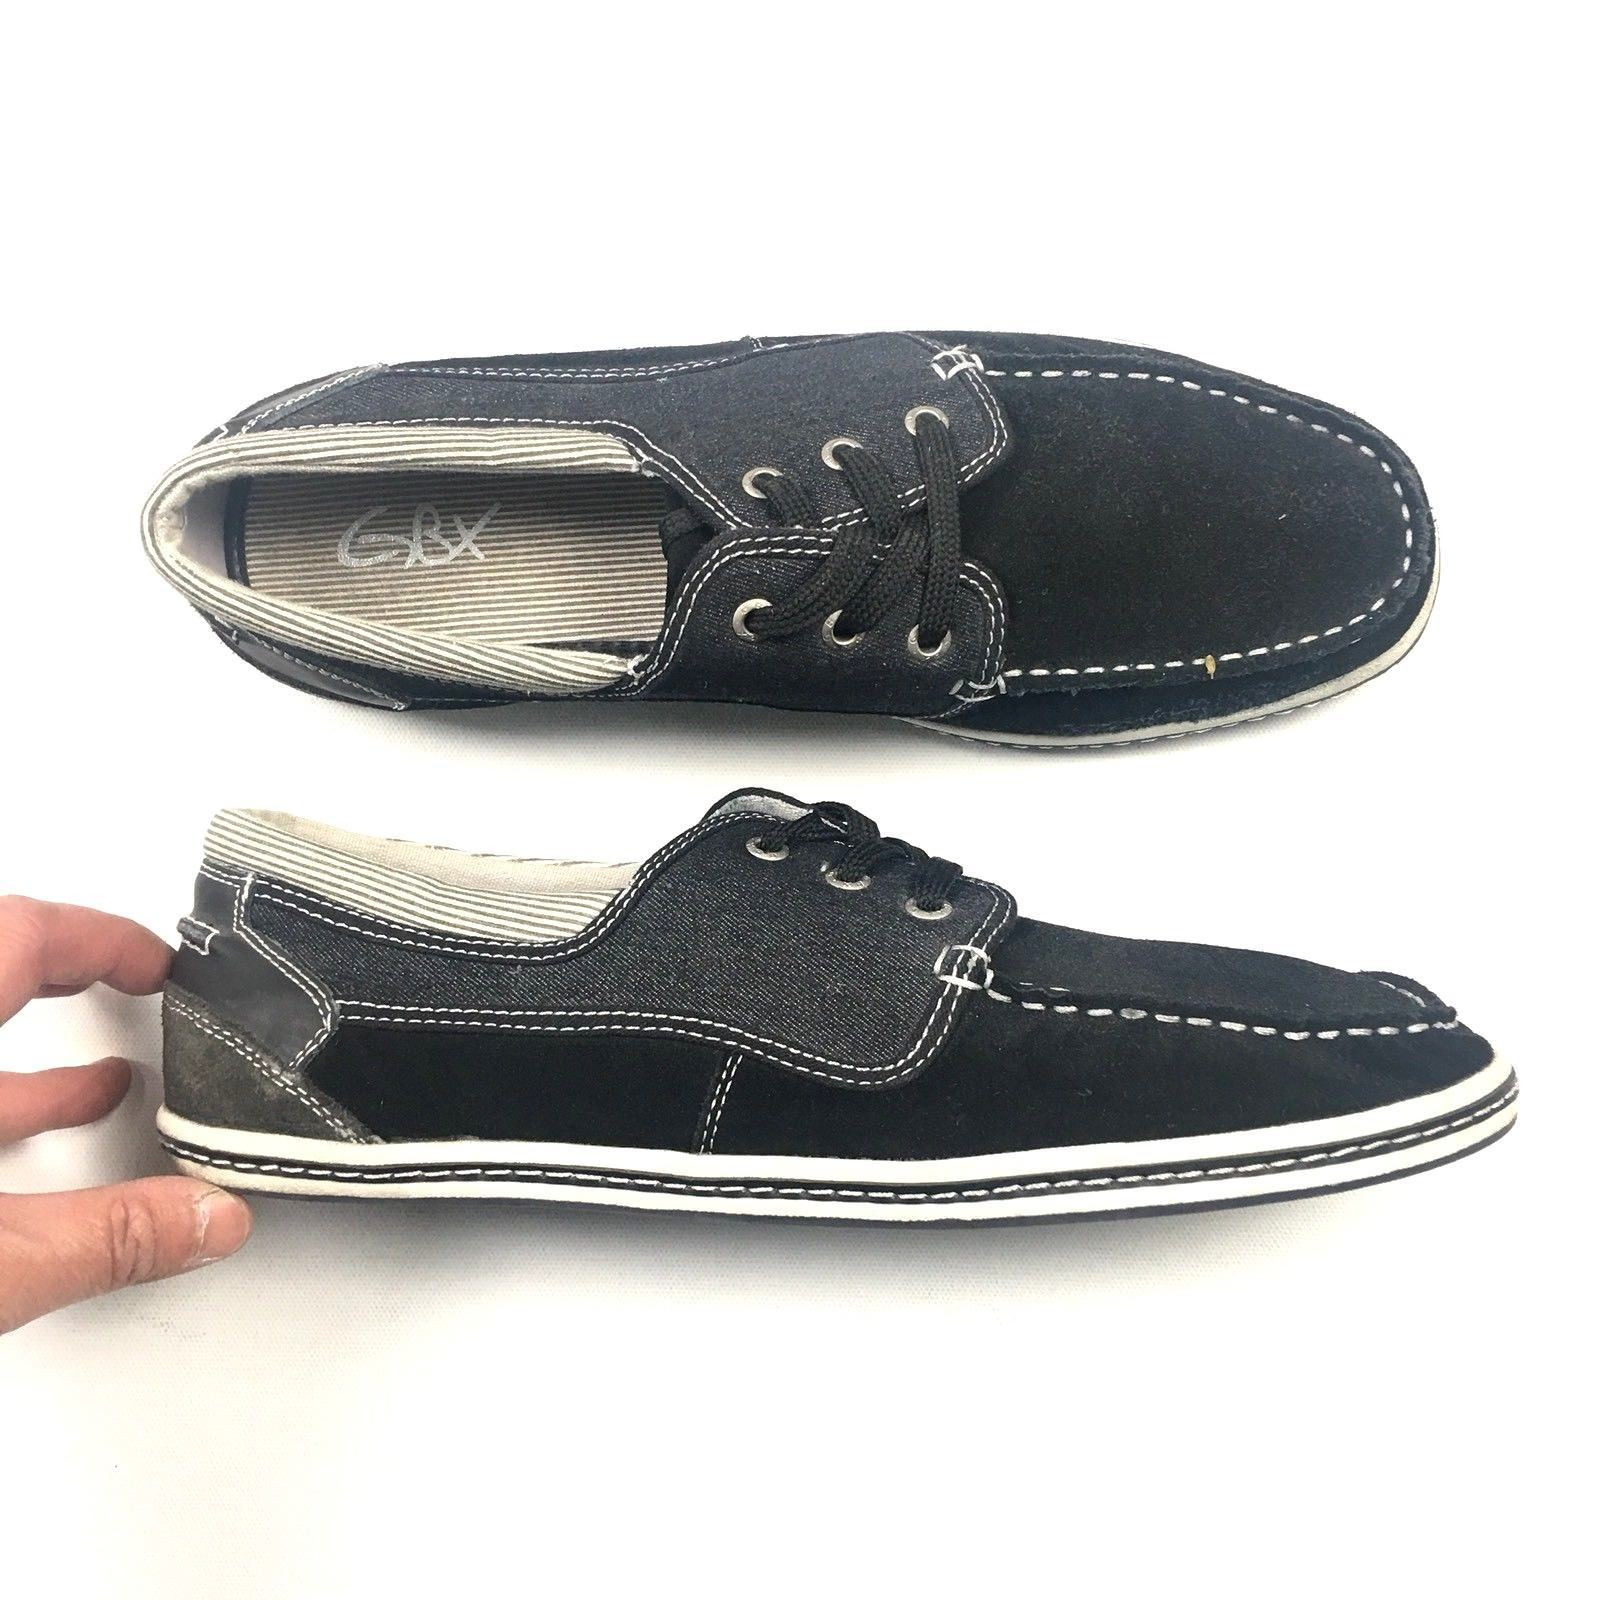 cheap for discount 64c32 6cdd3 Gbx Shoes  10 listings